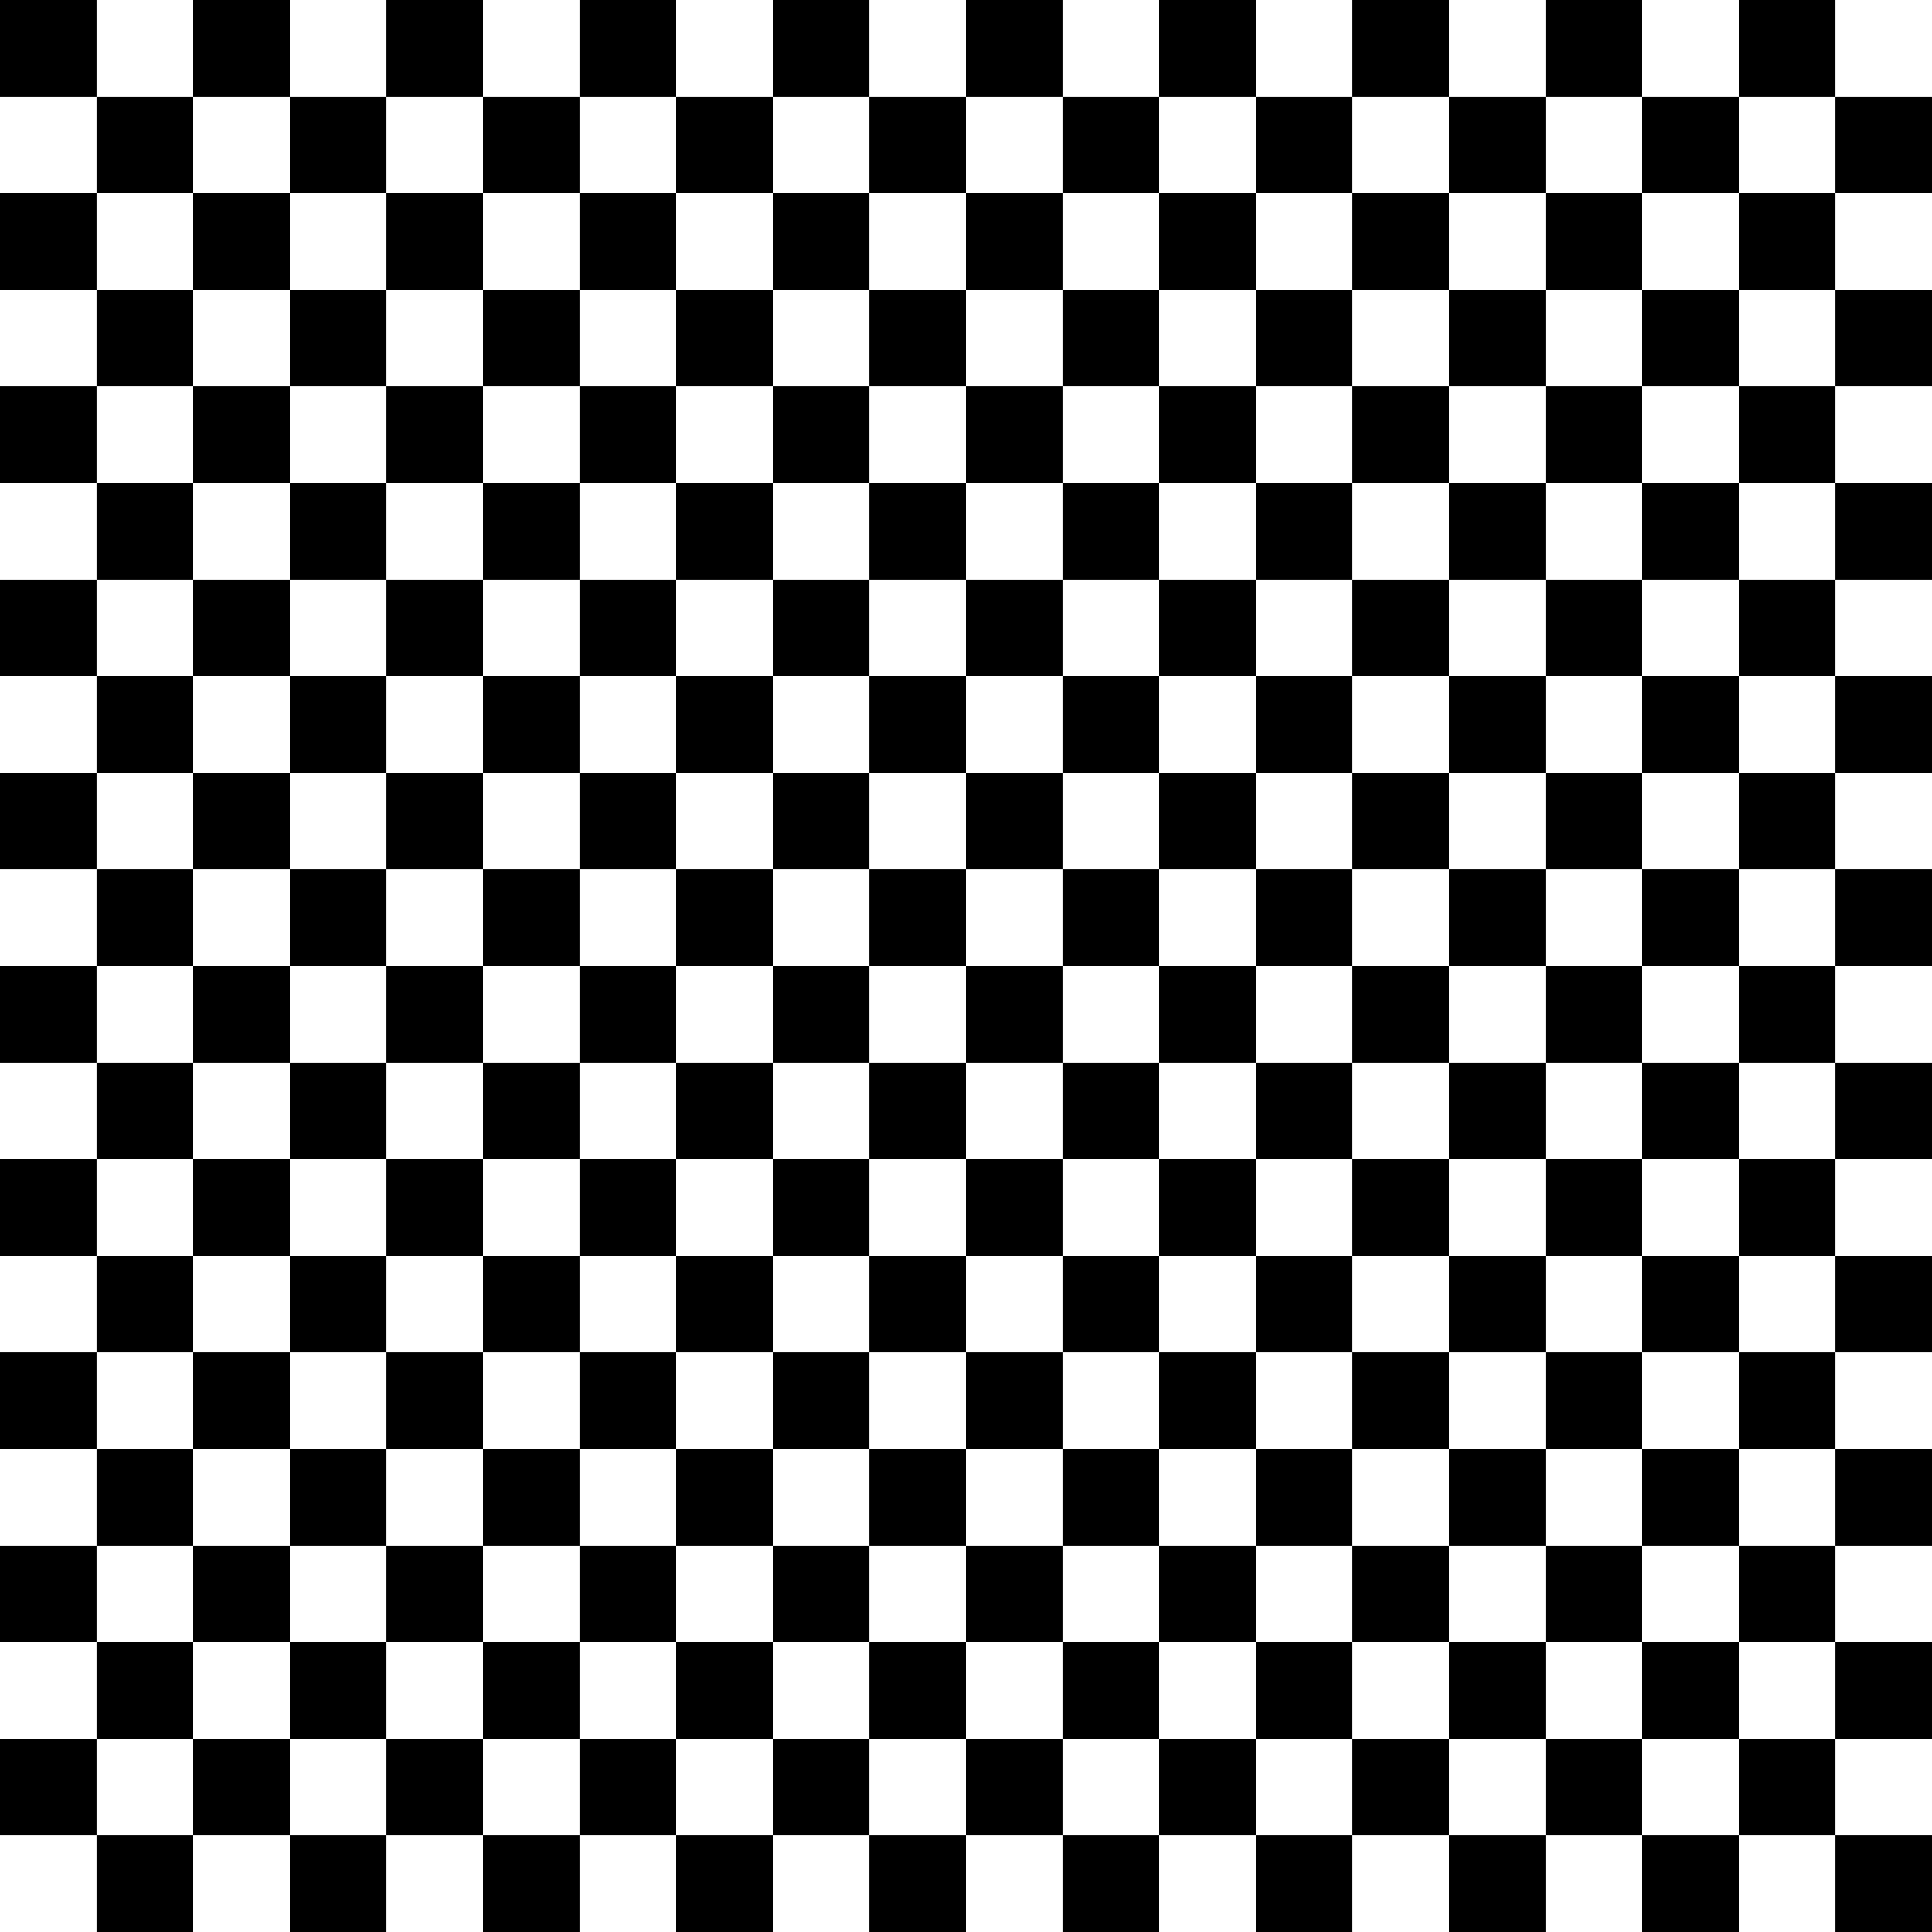 Black and White Checkerboard Pattern.